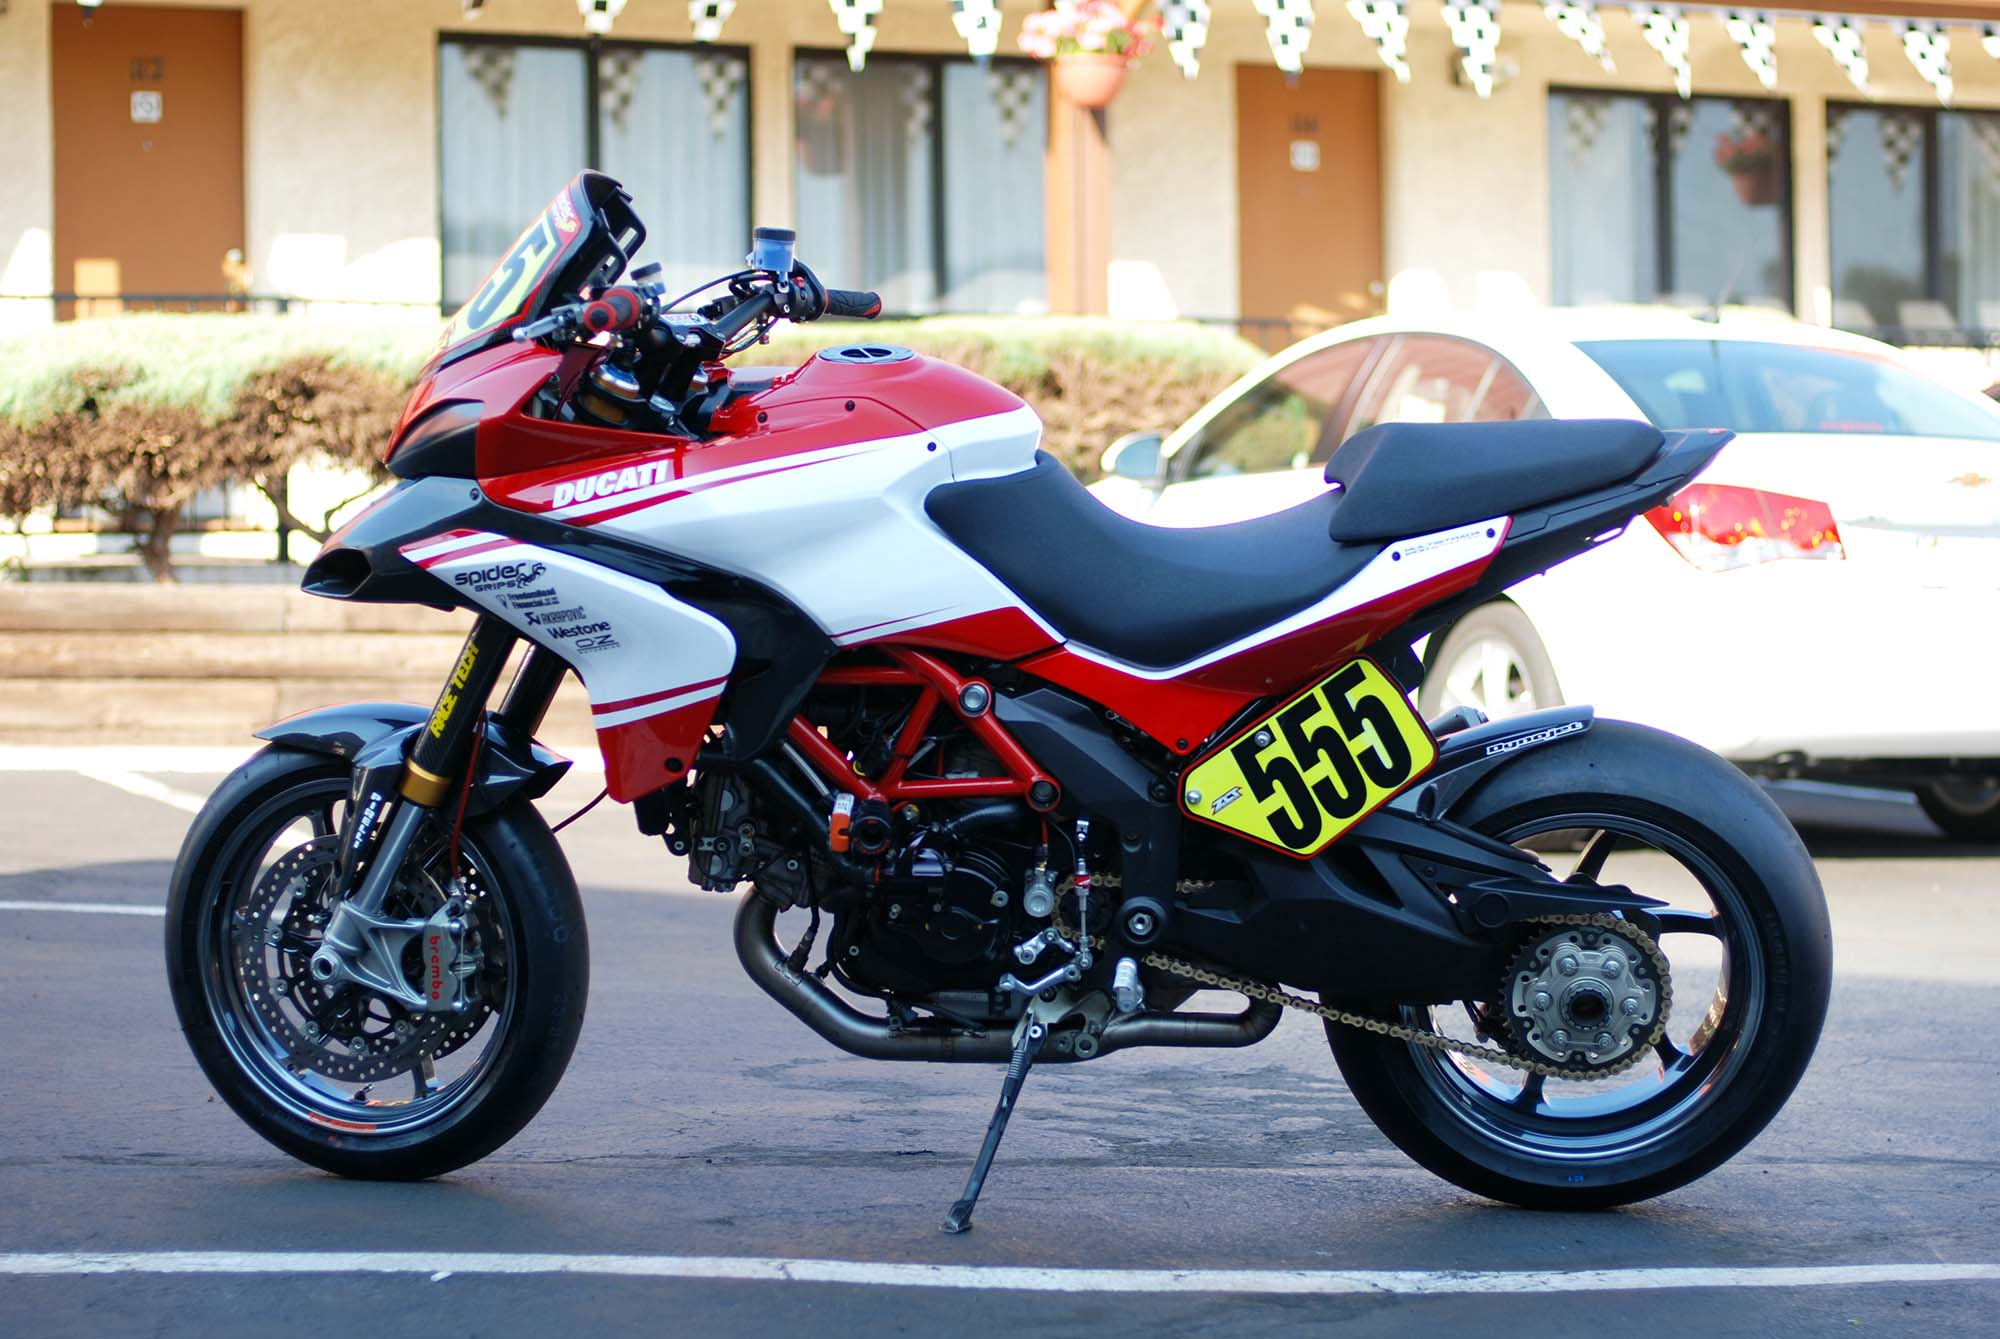 Ducati Multistrada 1200 S Pikes Peak Edition 2013 images #80025